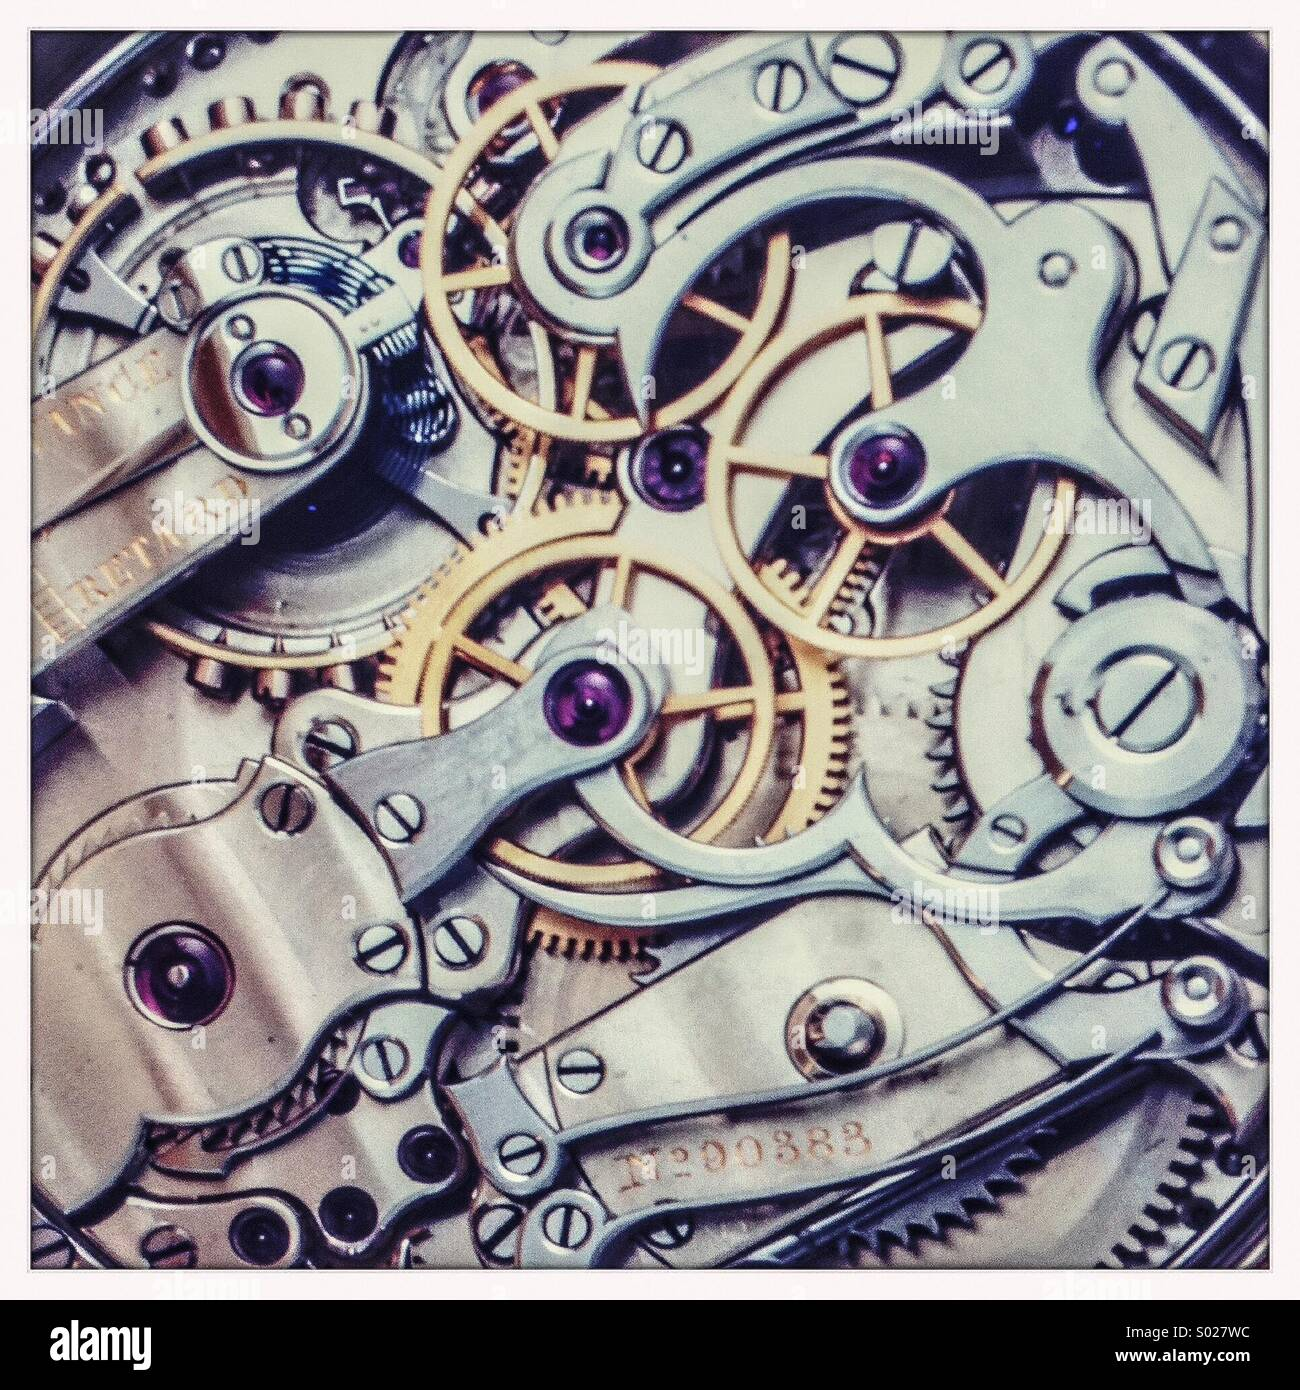 Close-up view of the movement of a pocket watch - Stock Image